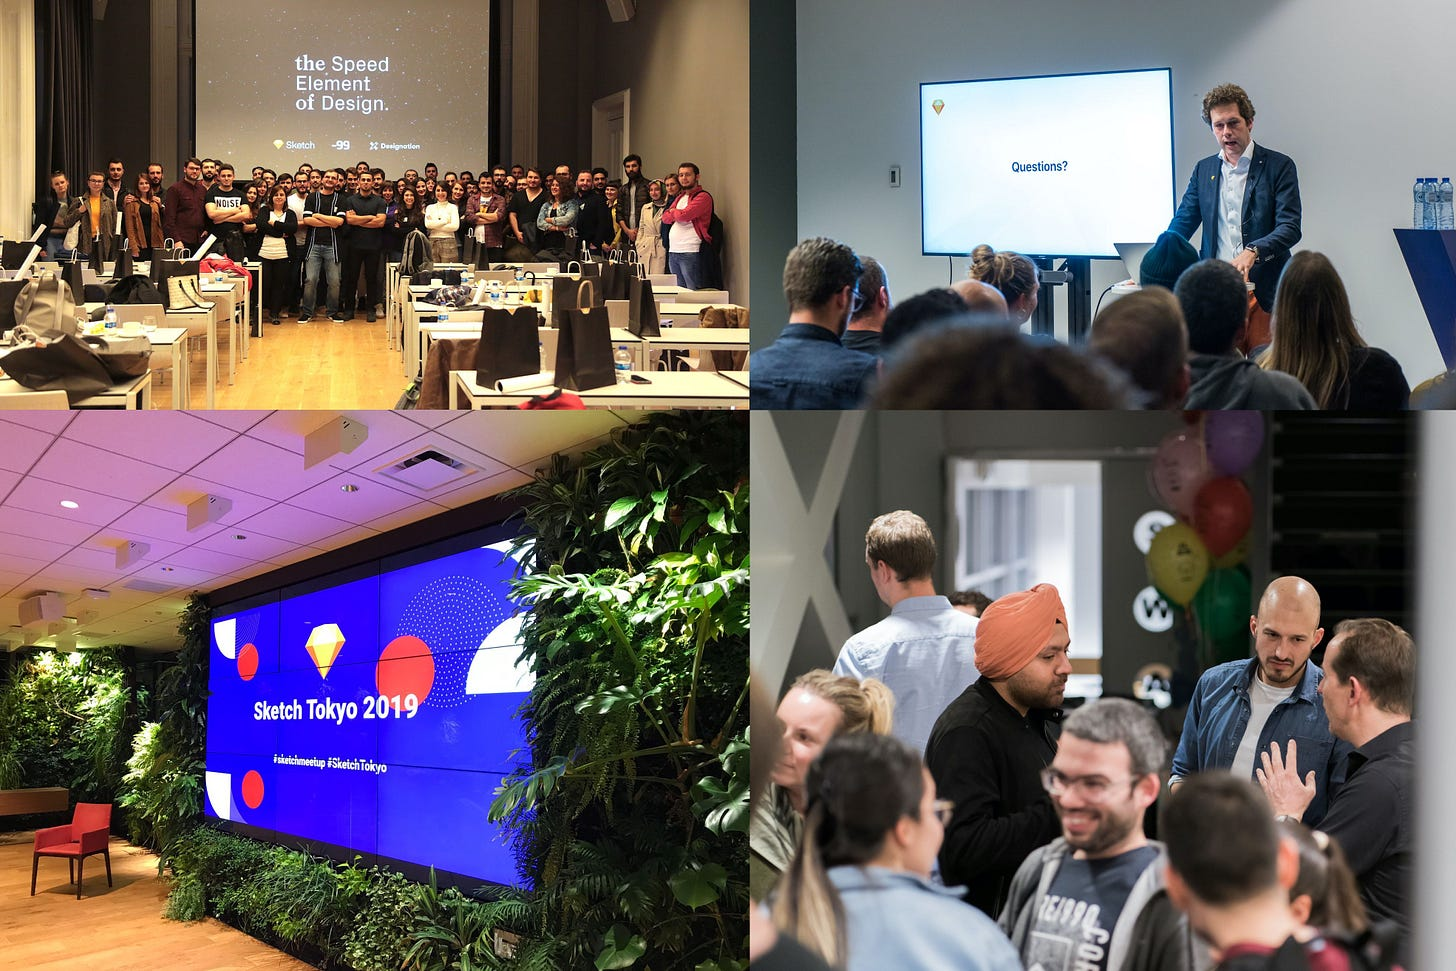 A montage of photos from various Sketch meetups around the world, including a photo of Sketch's co-founder Pieter Omvlee speaking at an event.